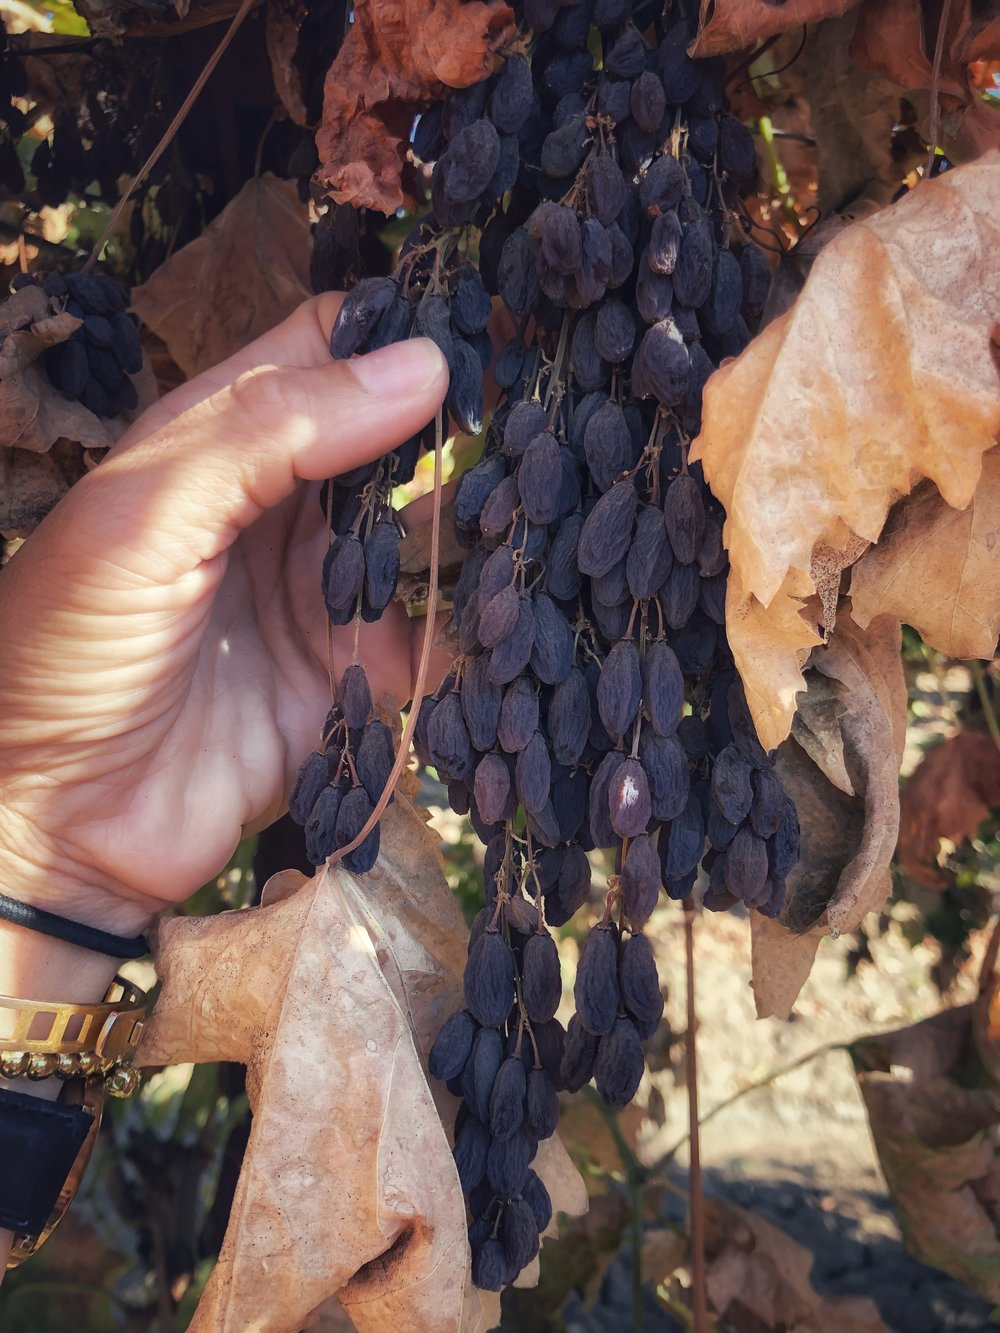 Where our food comes from: Raisins drying on the vine. www.ChefShayna.com